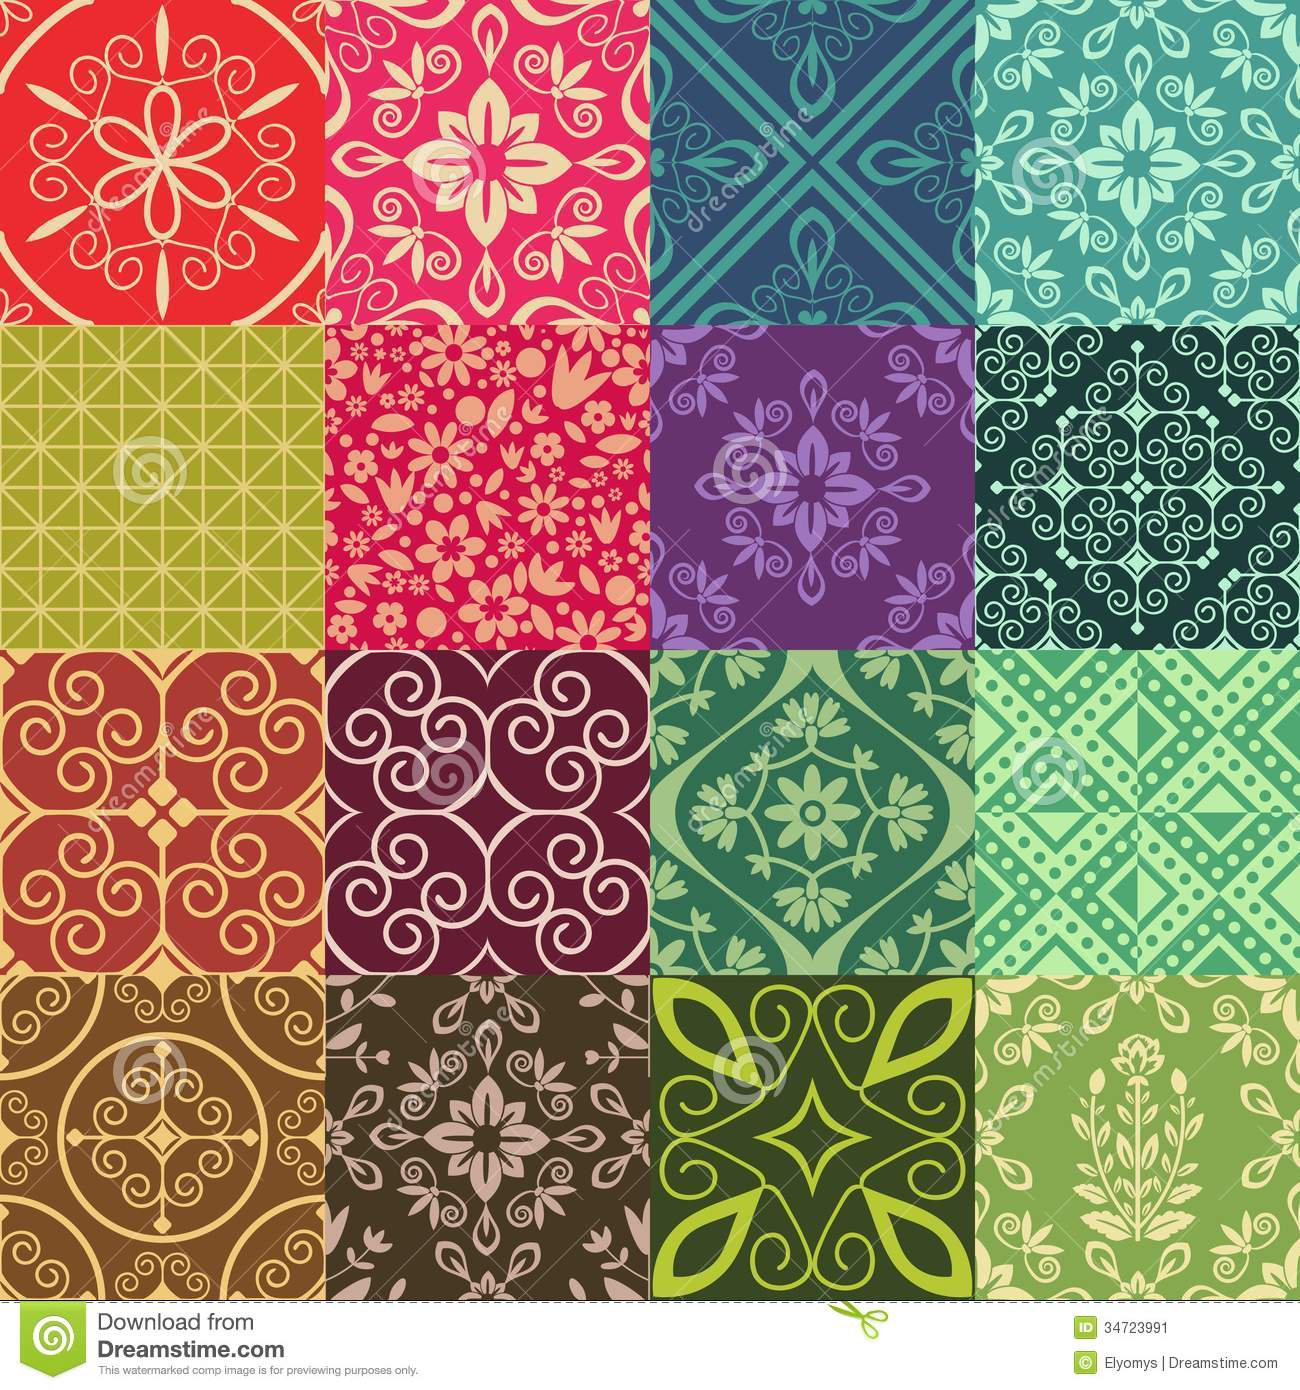 Stock Image Seamless Pattens Patten Collection Damask Ornament Image34723991 on Green Spiral Fabric